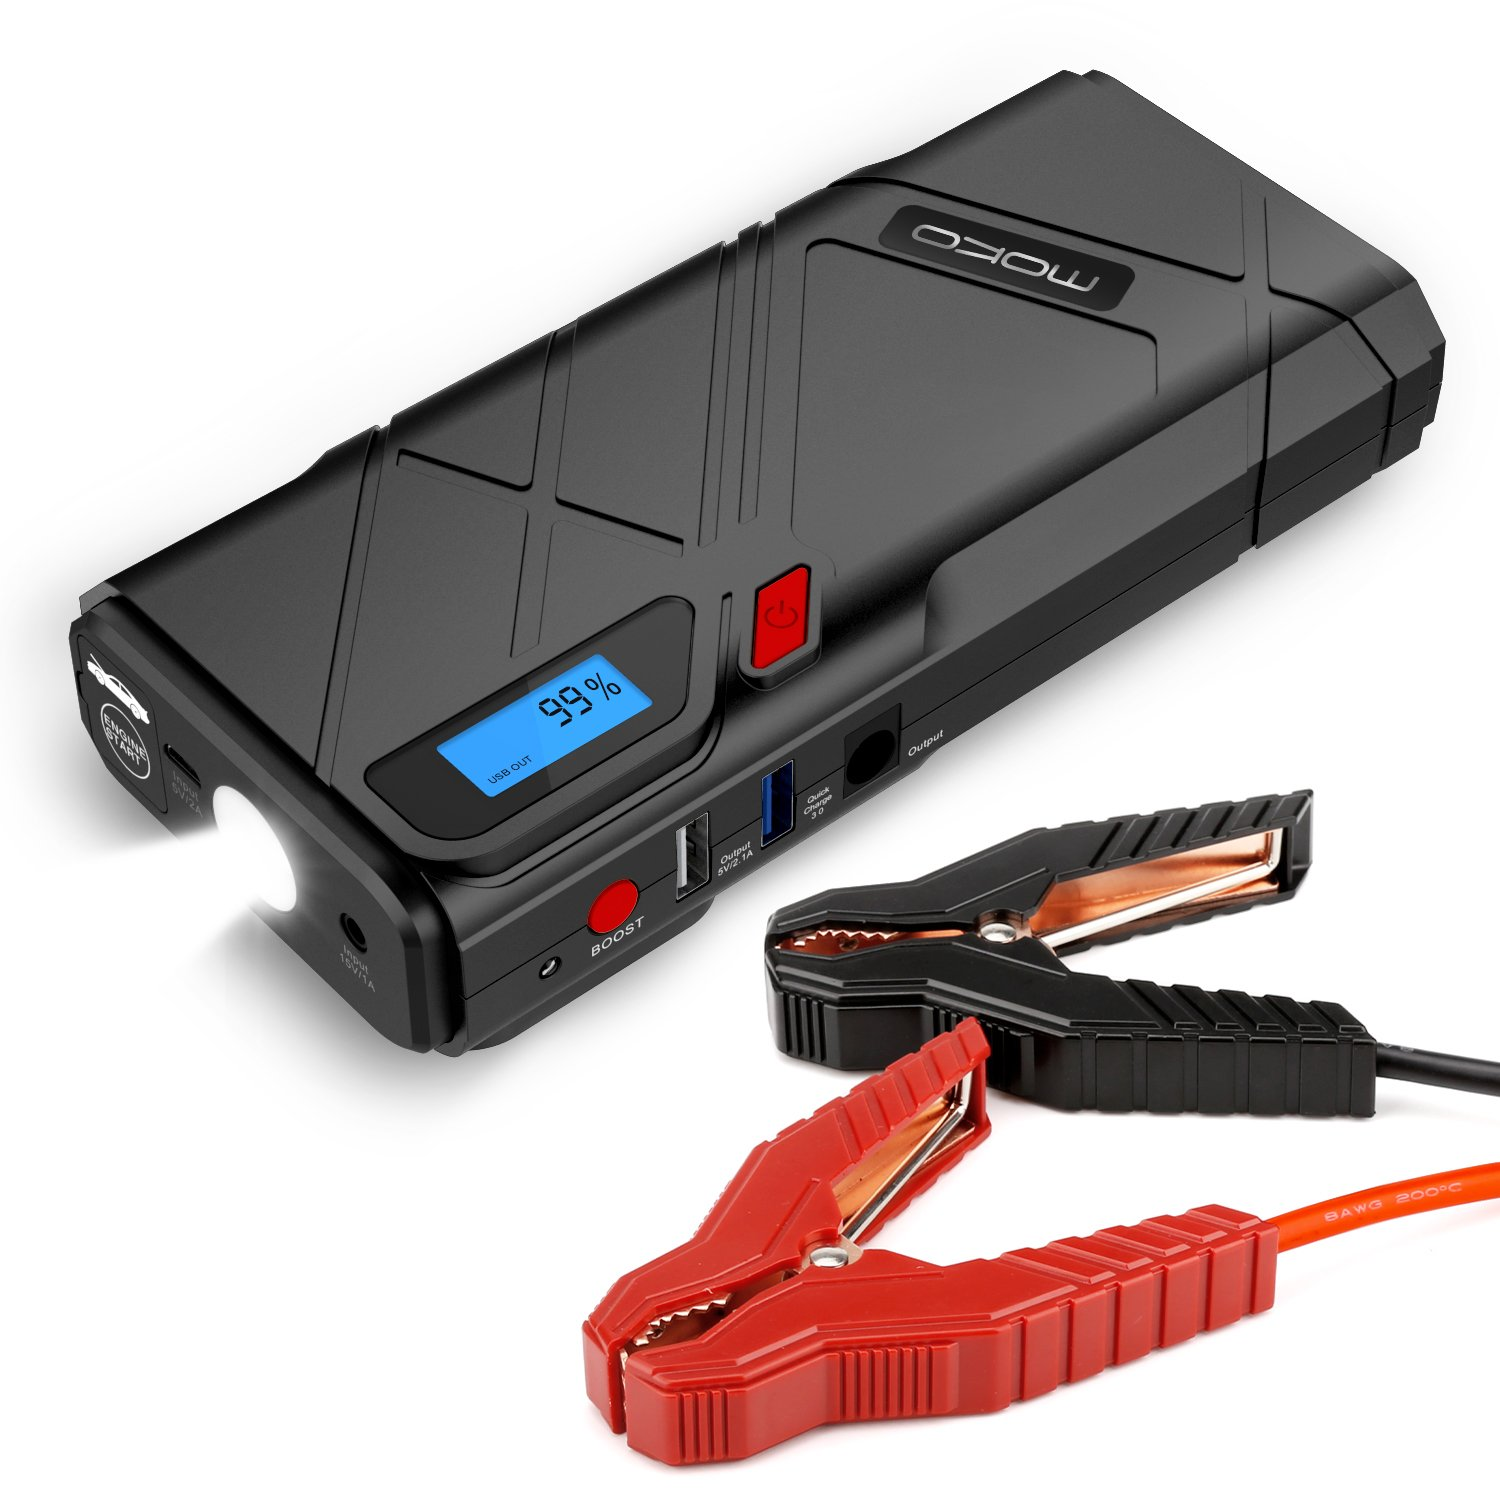 MoKo 1200A Peak Car Jump Starter, 12000mAh Portable Power Bank Battery Booster (Up to 6.5L Gas, 3.5L Diesel Engine), with 2 USB Ports, Car Charger, Emergency LED Flashlight (Yellow): Amazon.es: Electrónica